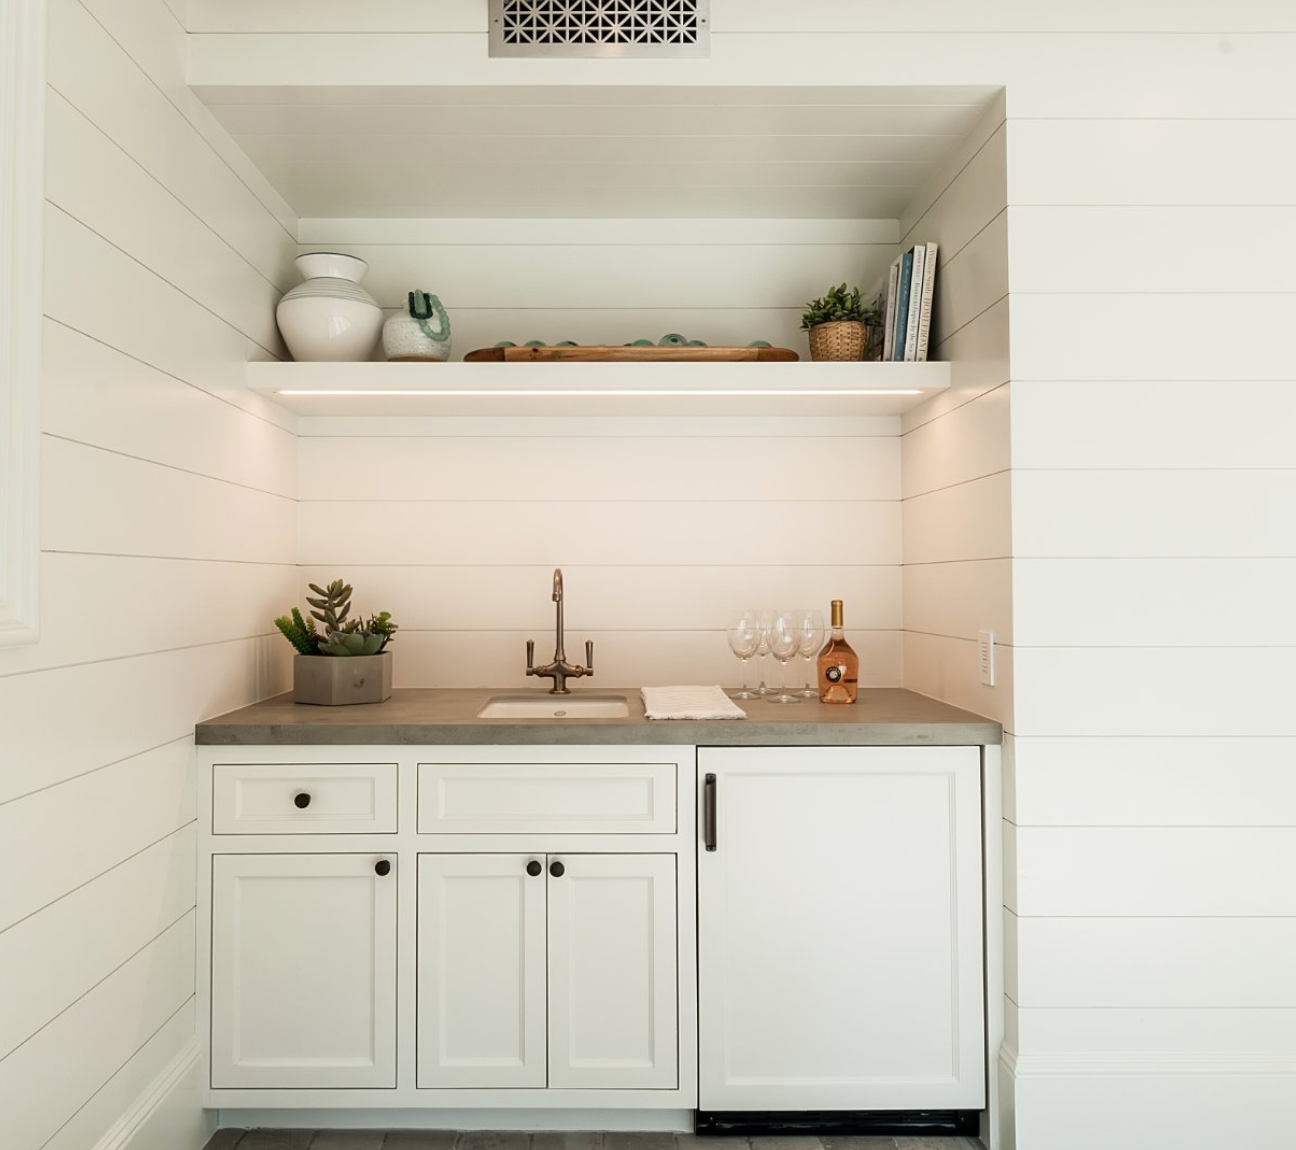 Wet Bar built in for entertaining in modern coastal farmhouse